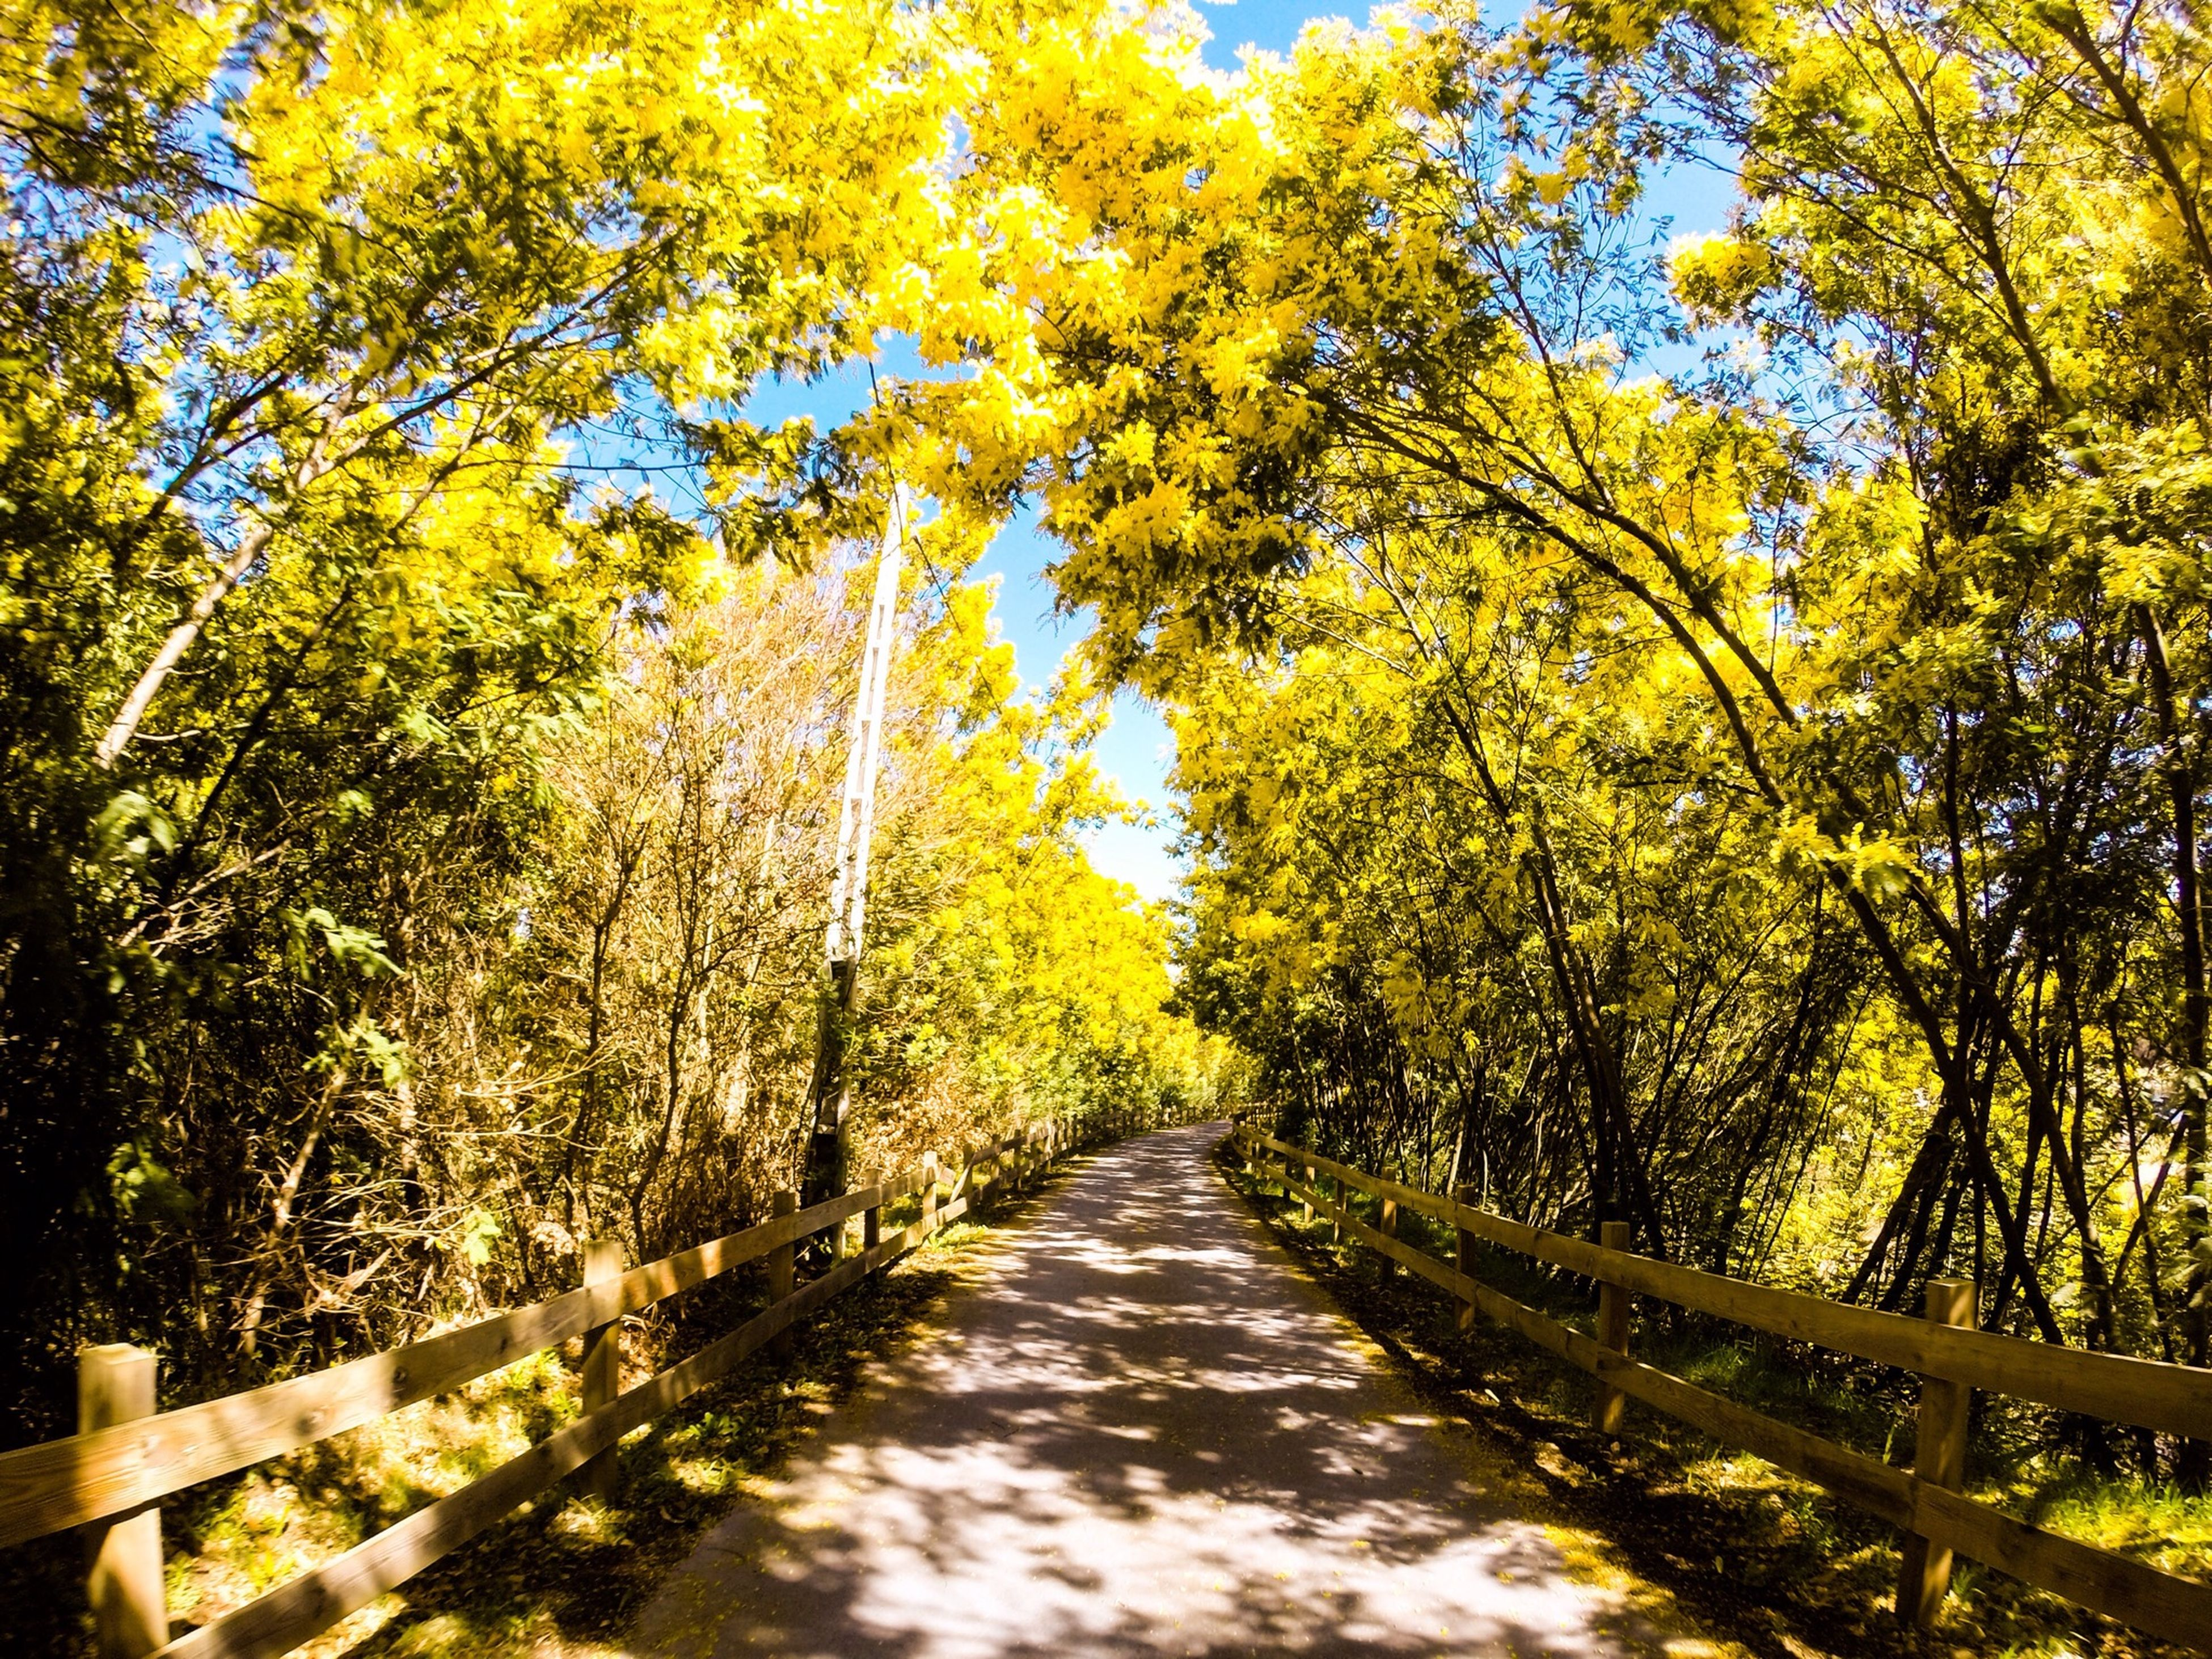 tree, the way forward, diminishing perspective, tranquility, autumn, vanishing point, beauty in nature, nature, growth, branch, tranquil scene, change, forest, scenics, treelined, season, transportation, yellow, road, footpath